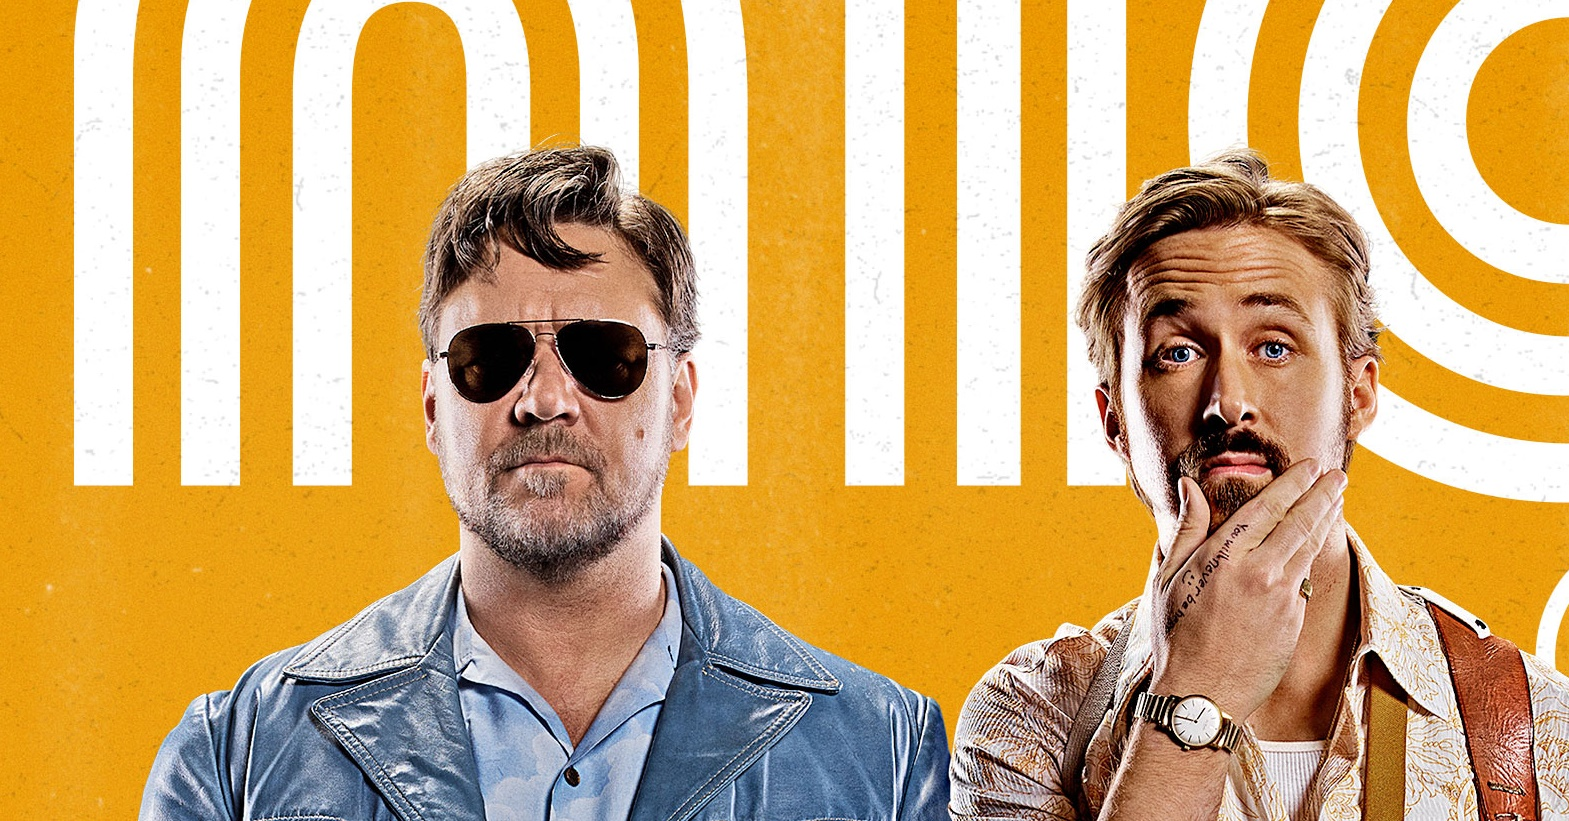 The nice guys film wallpaper